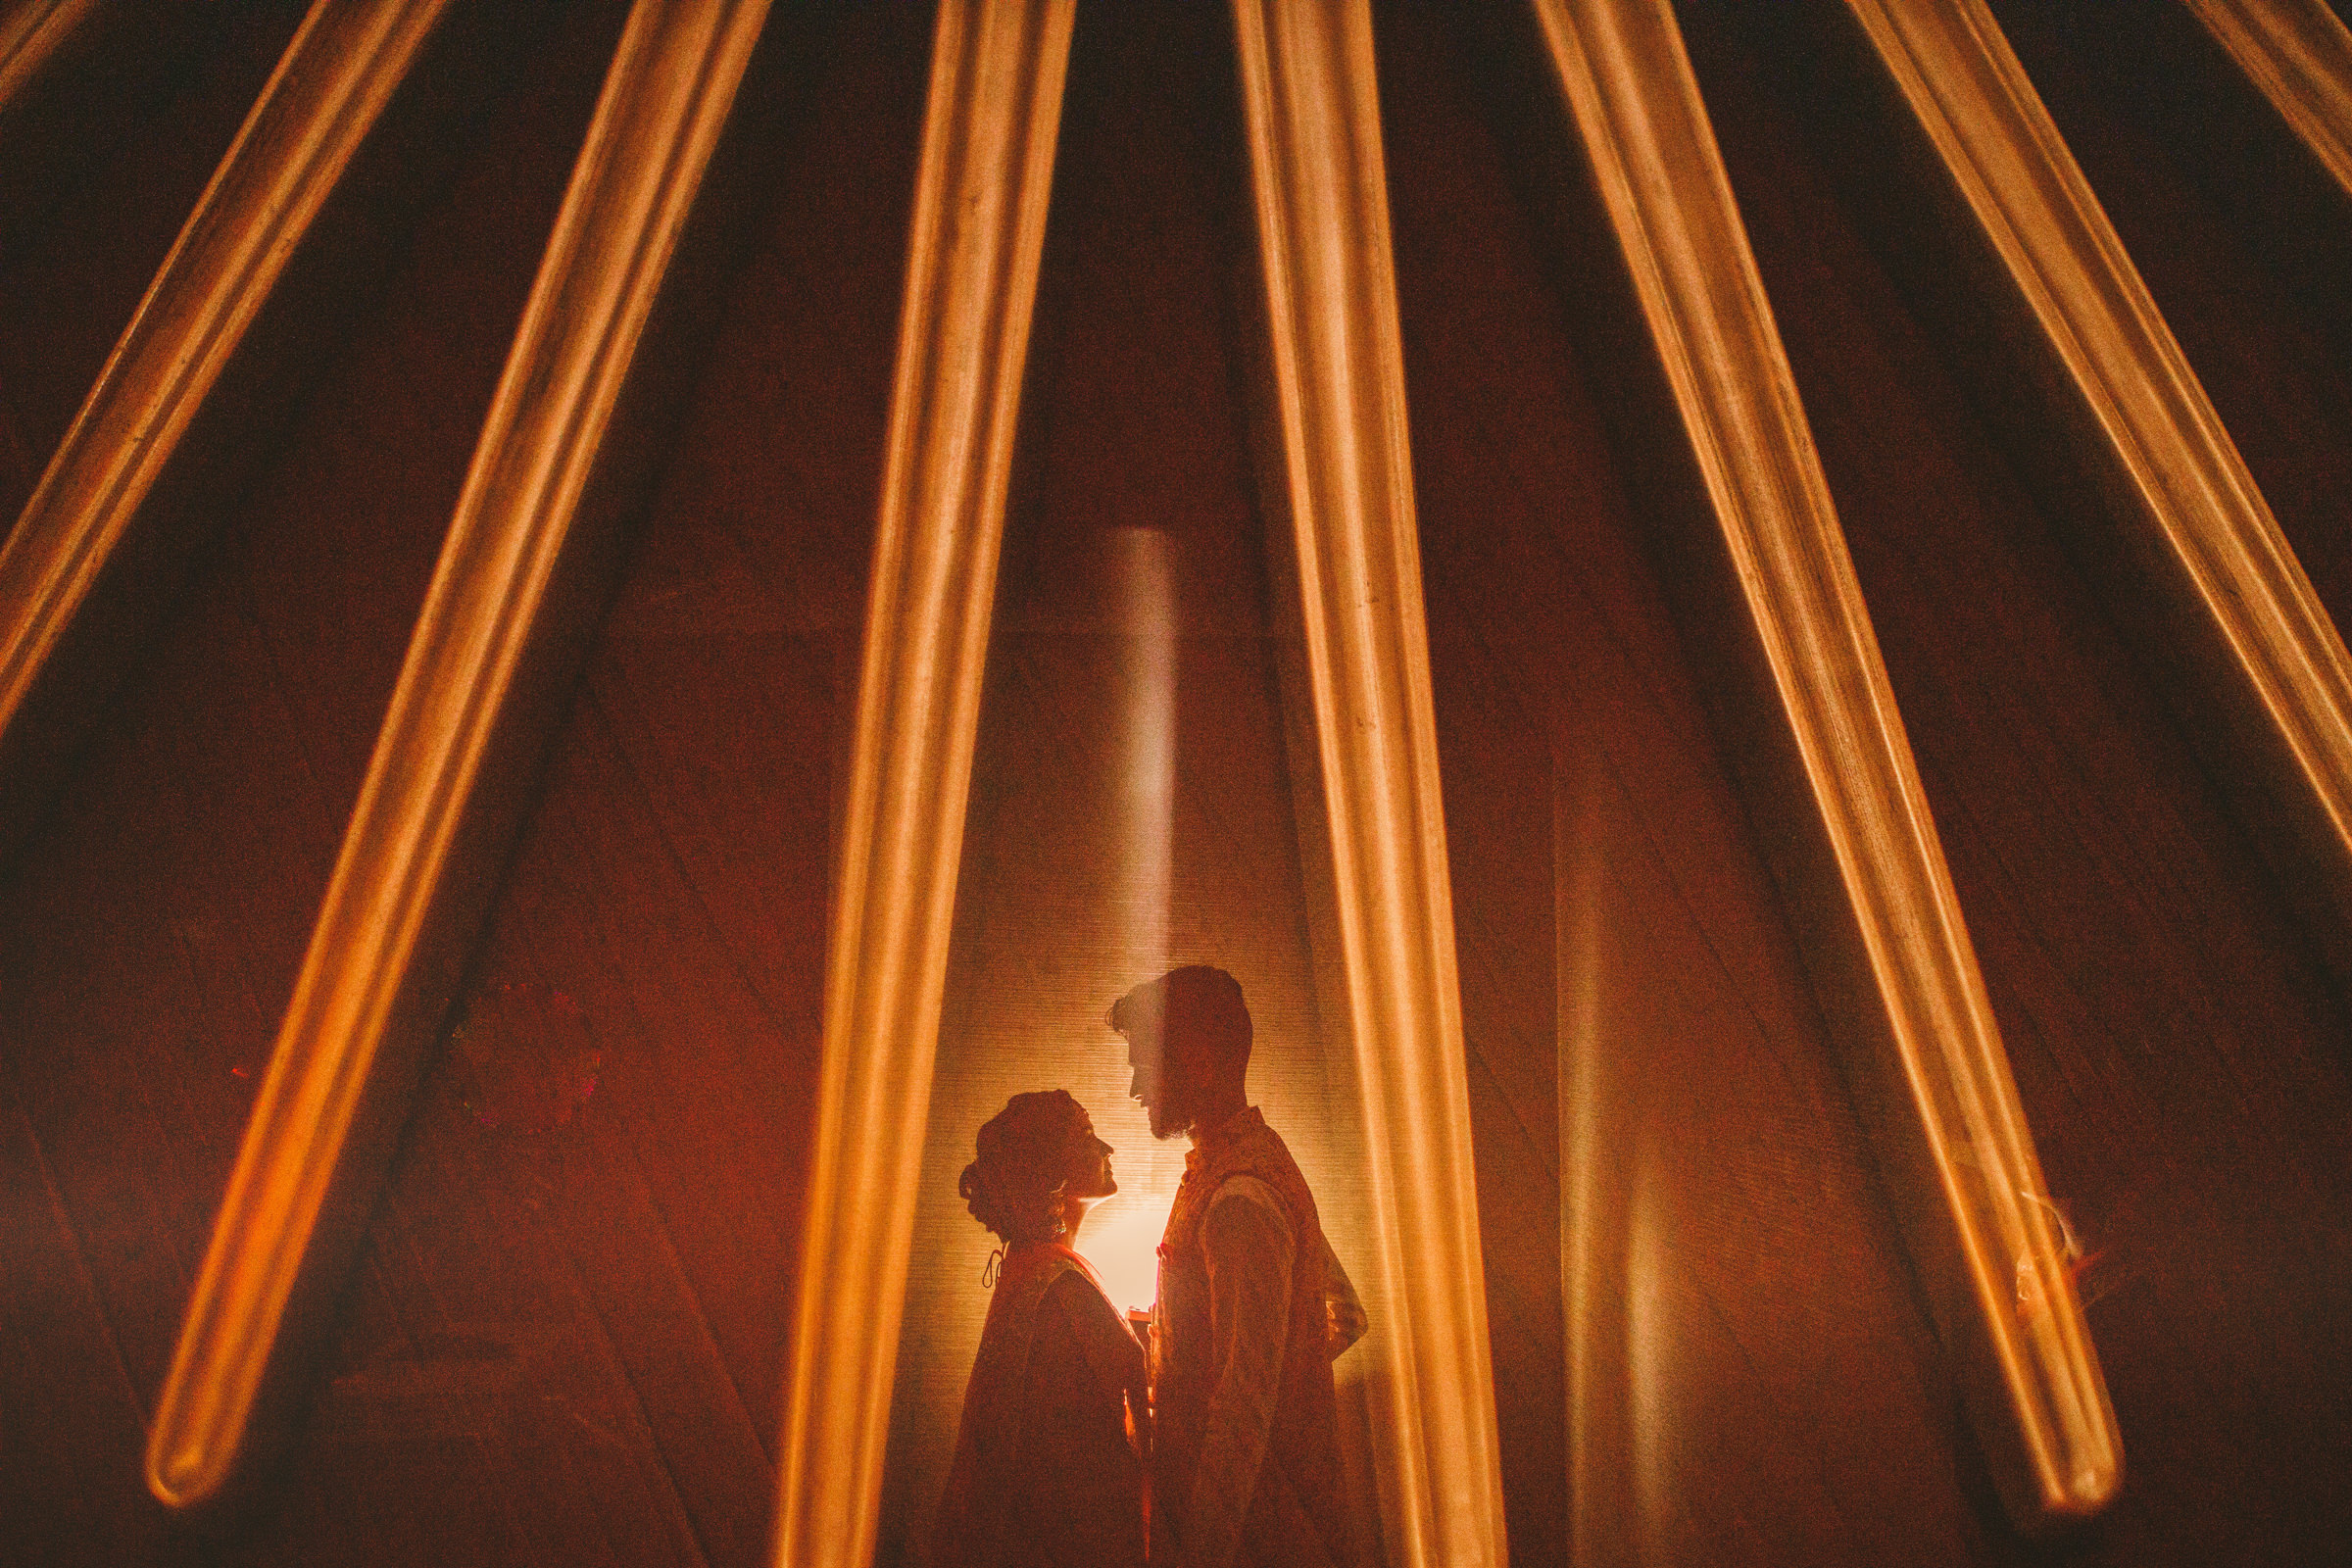 Couple of photo reflected on gold sun sculpture - photo by Sam Hurd - DC